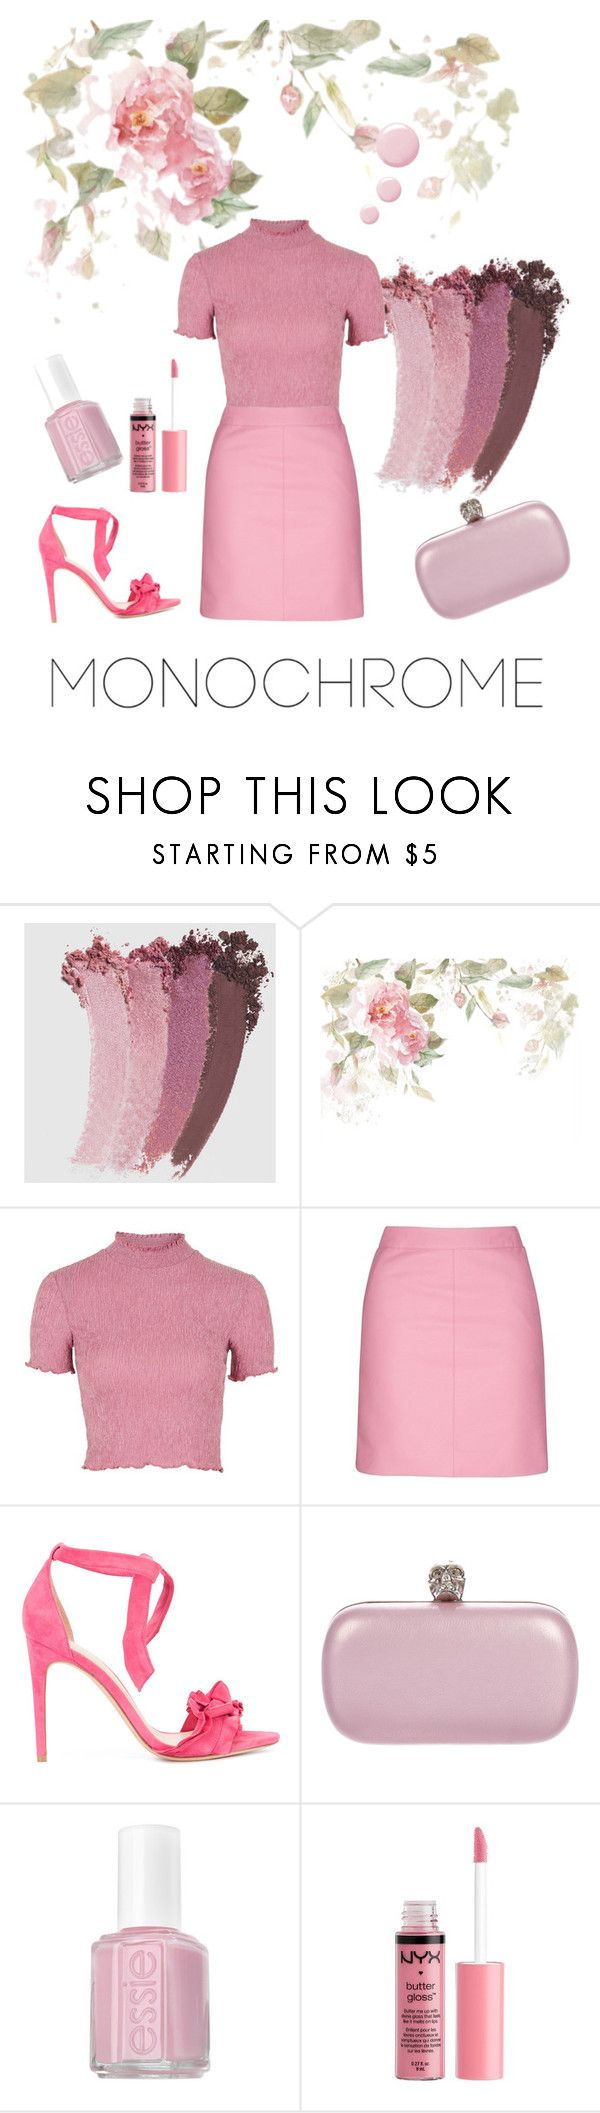 """""""Pinky pink 💞"""" by angel000 on Polyvore featuring Gucci, Topshop, Alexandre Birman, Alexander McQueen, Essie, Charlotte Russe, Pink, like, pinky and colorchallenge"""